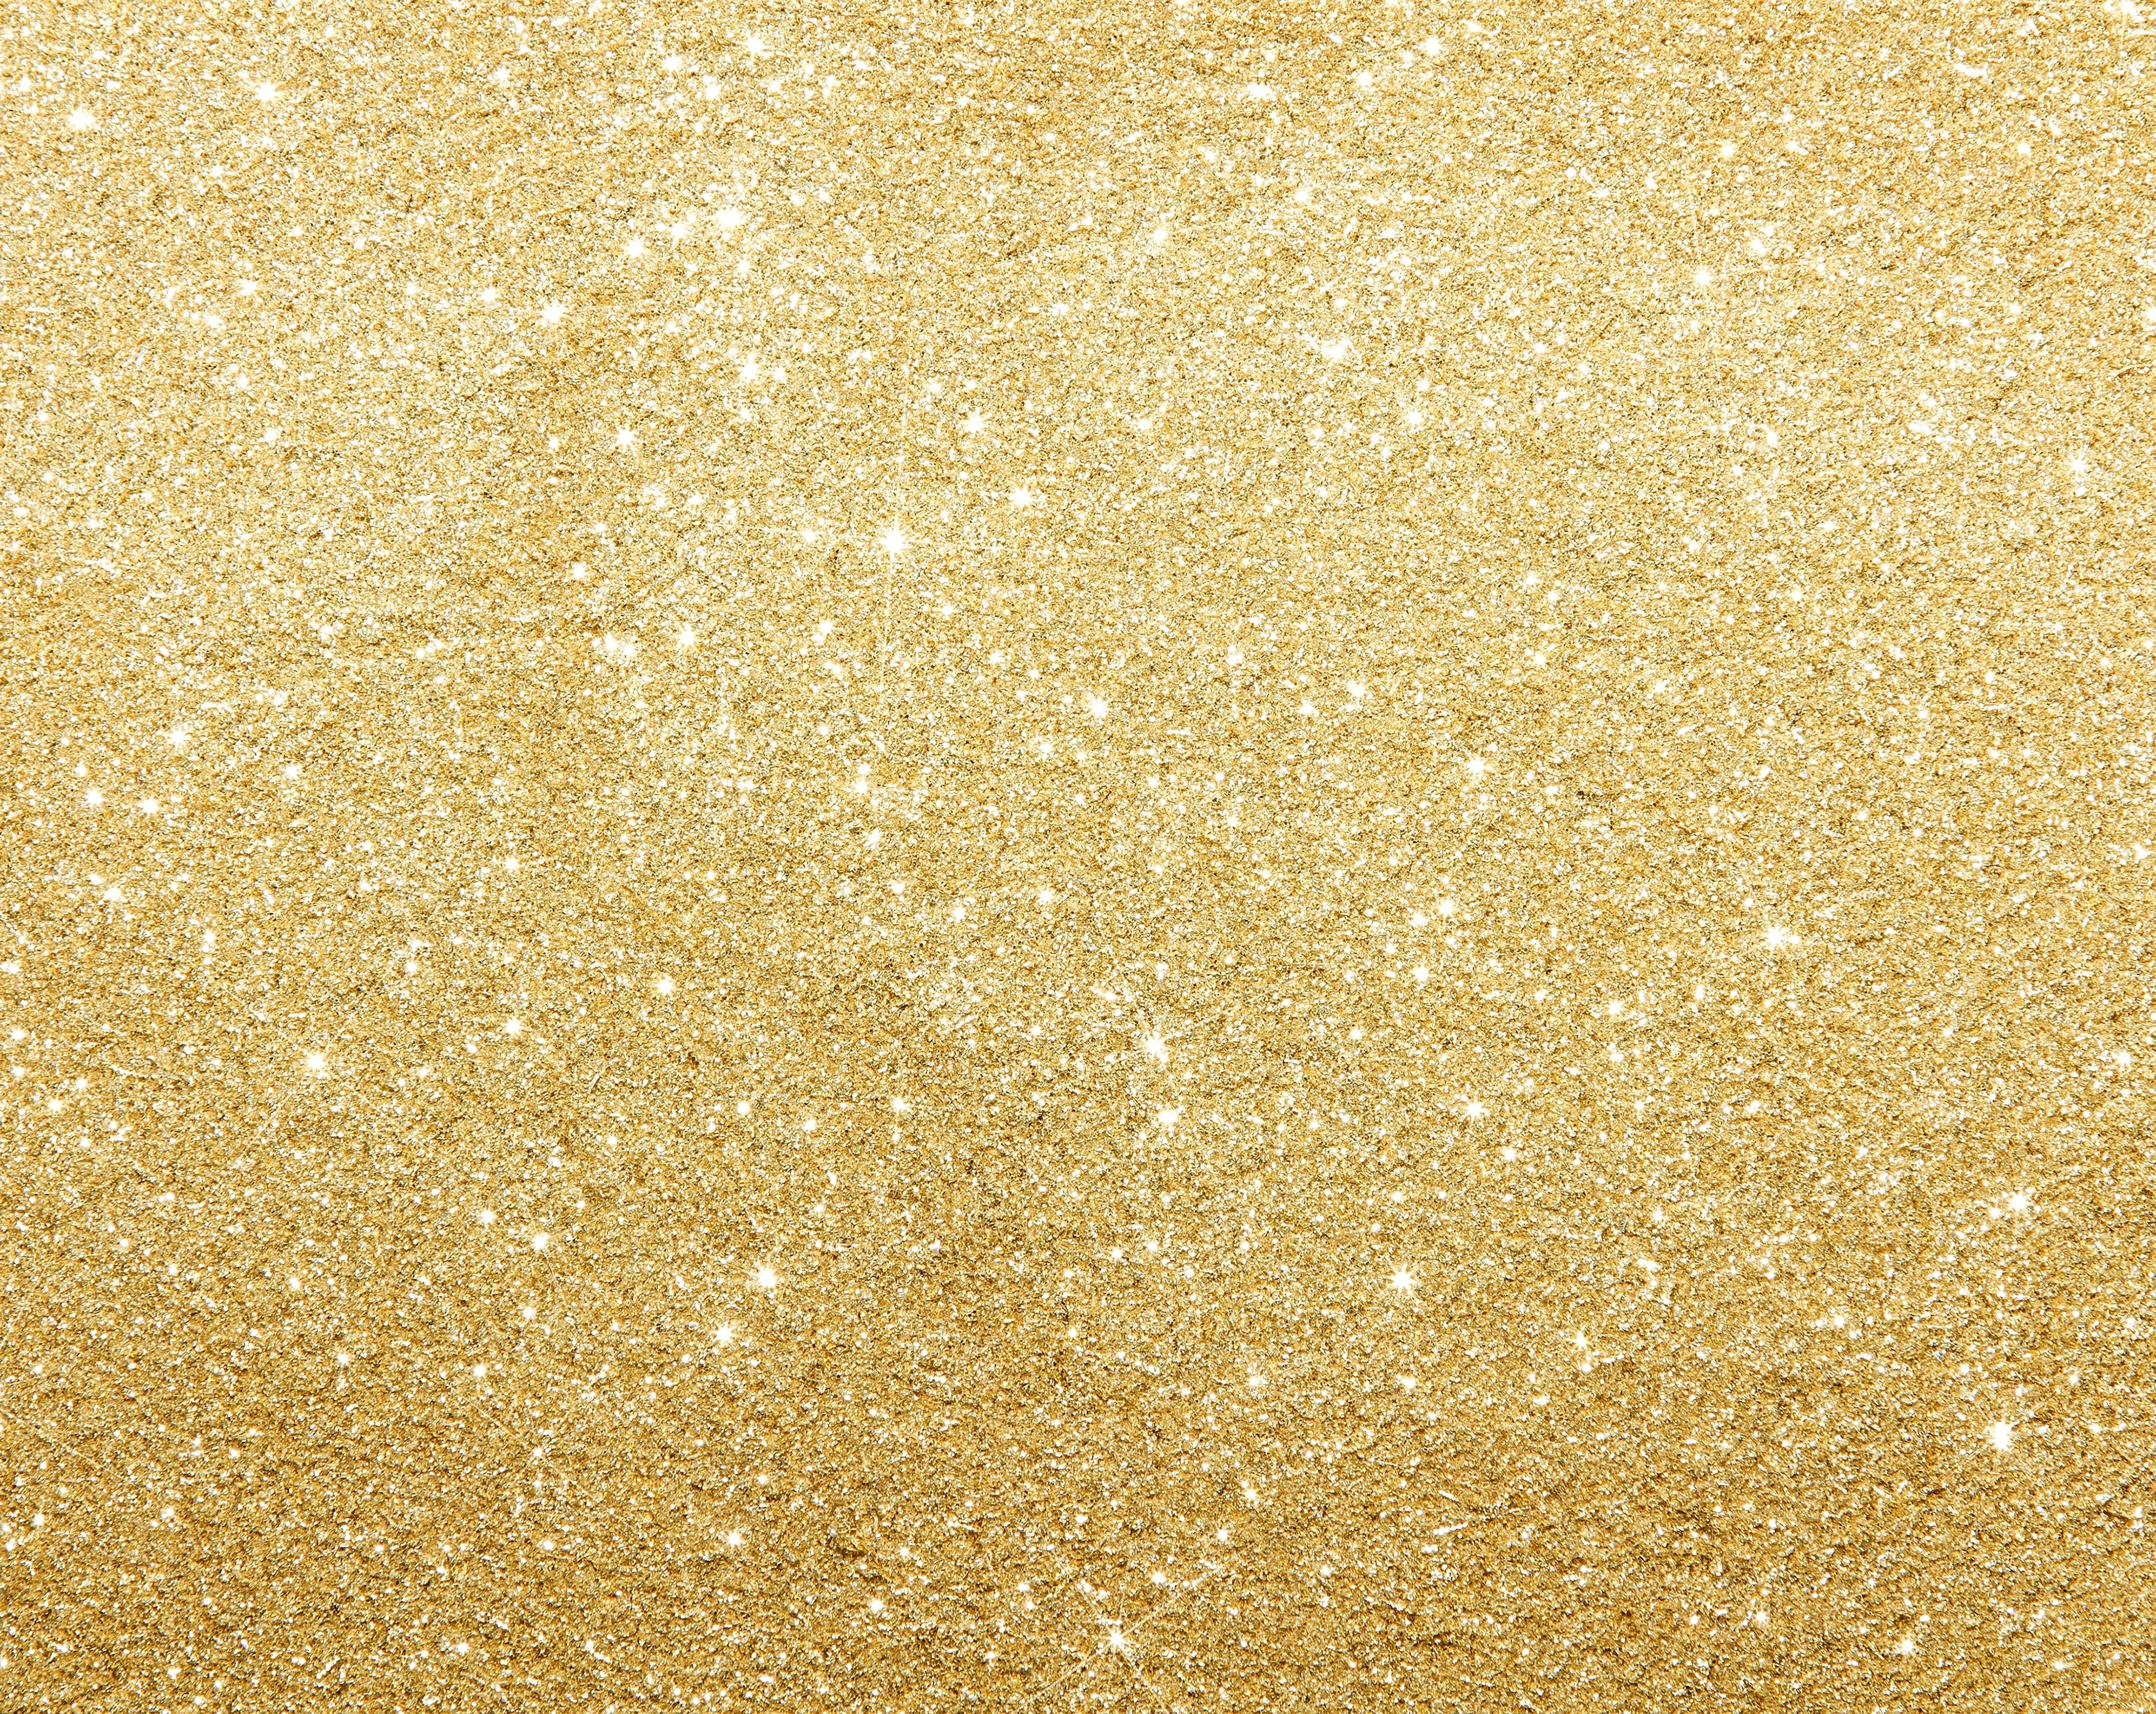 Sparkle Gold Wallpaper Wallpapersafari